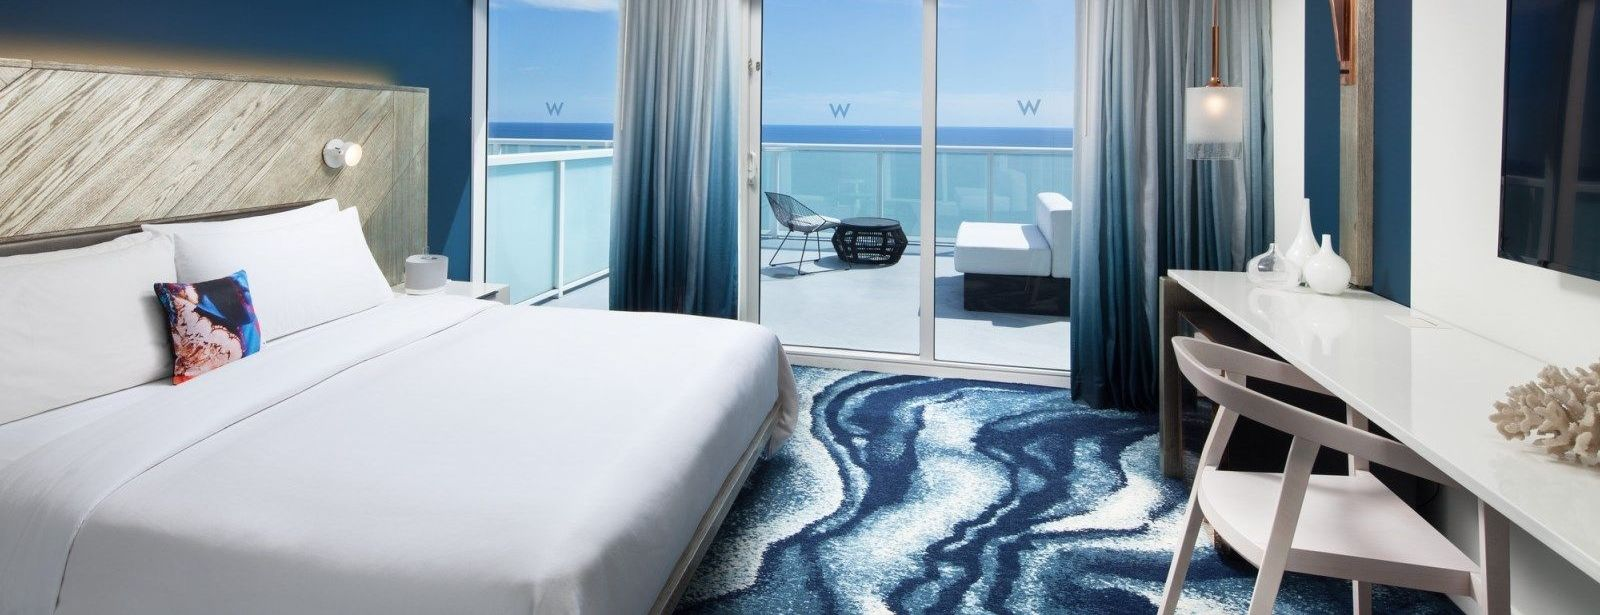 Fabulous Oceanfront Room - W Fort Lauderdale